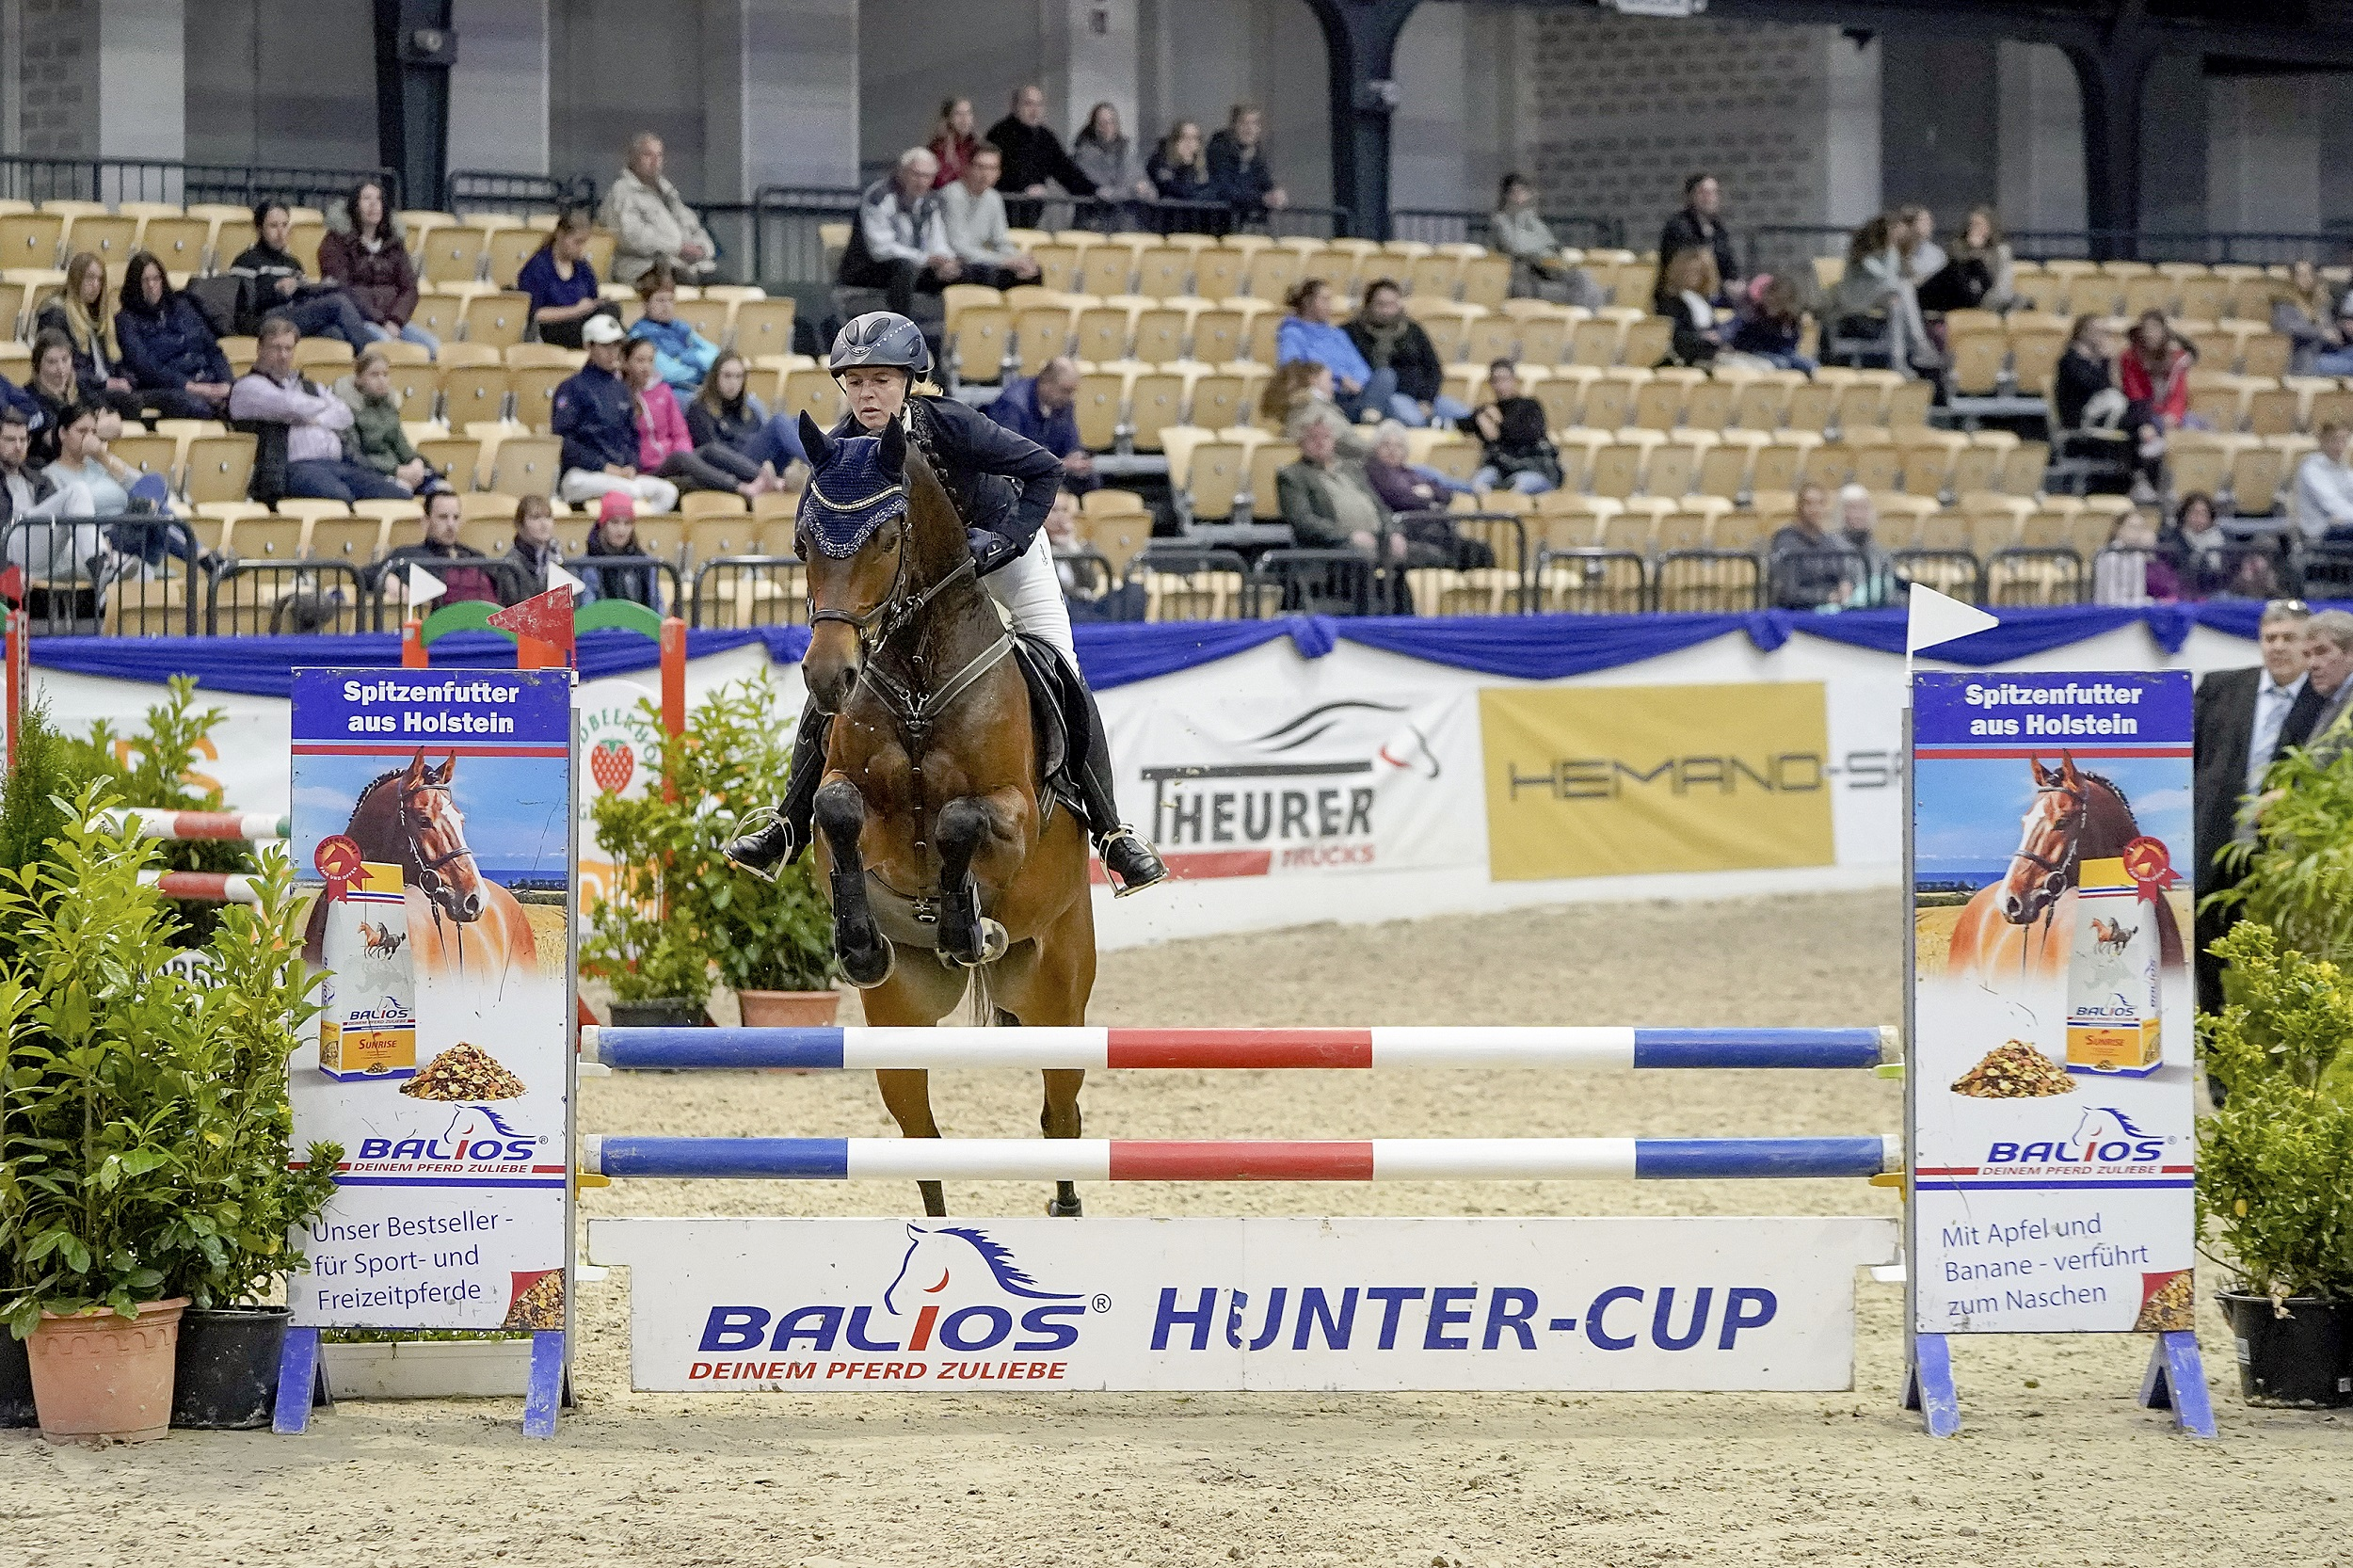 aside image Balios Hunter Cup Grandchampion 2019 - Mia Scholz und Charlie Pitts